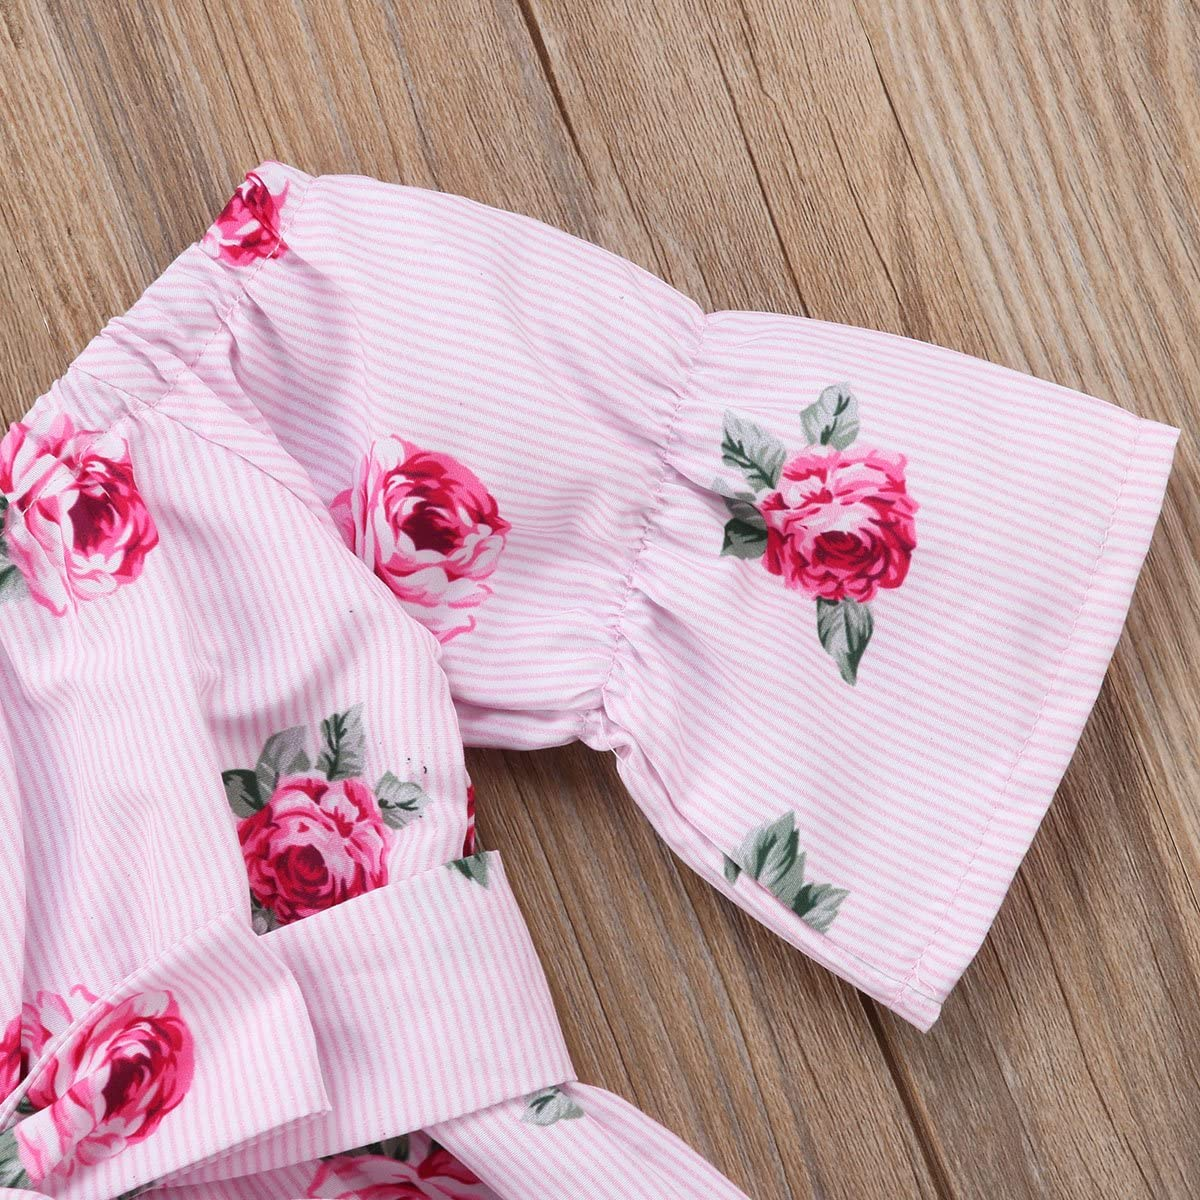 Aunavey Baby Girl Off The Shoulder Floral Romper Jumpsuits Casual Summer Clothing